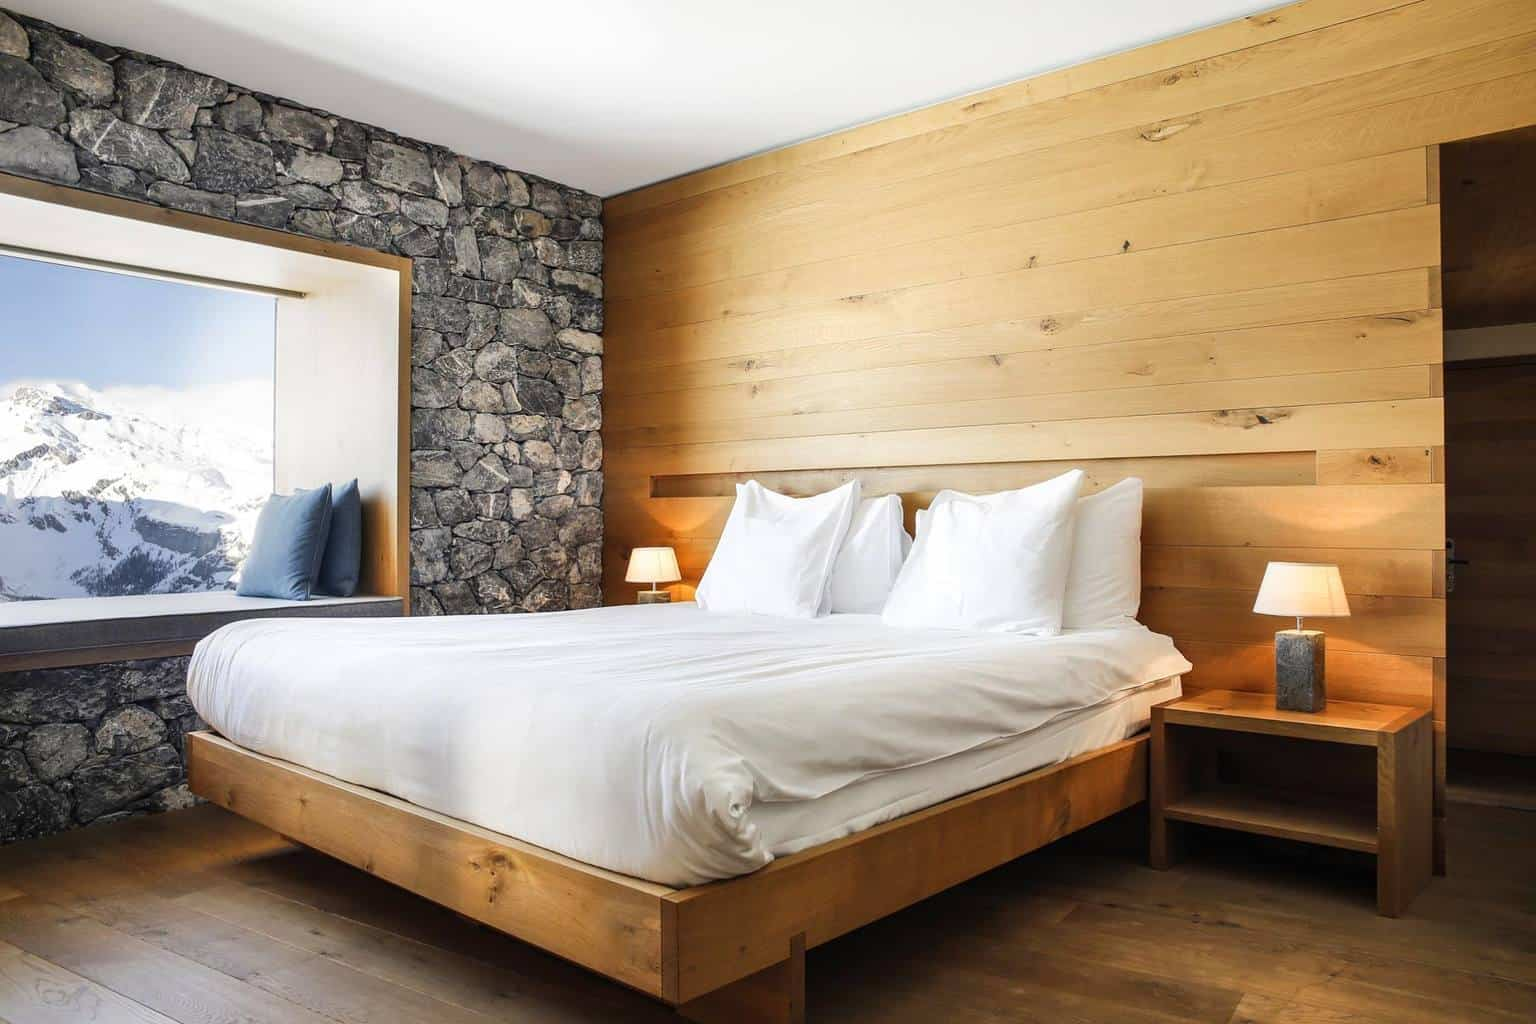 The bedrooms at The Hotel Chetzeron Crans Montana